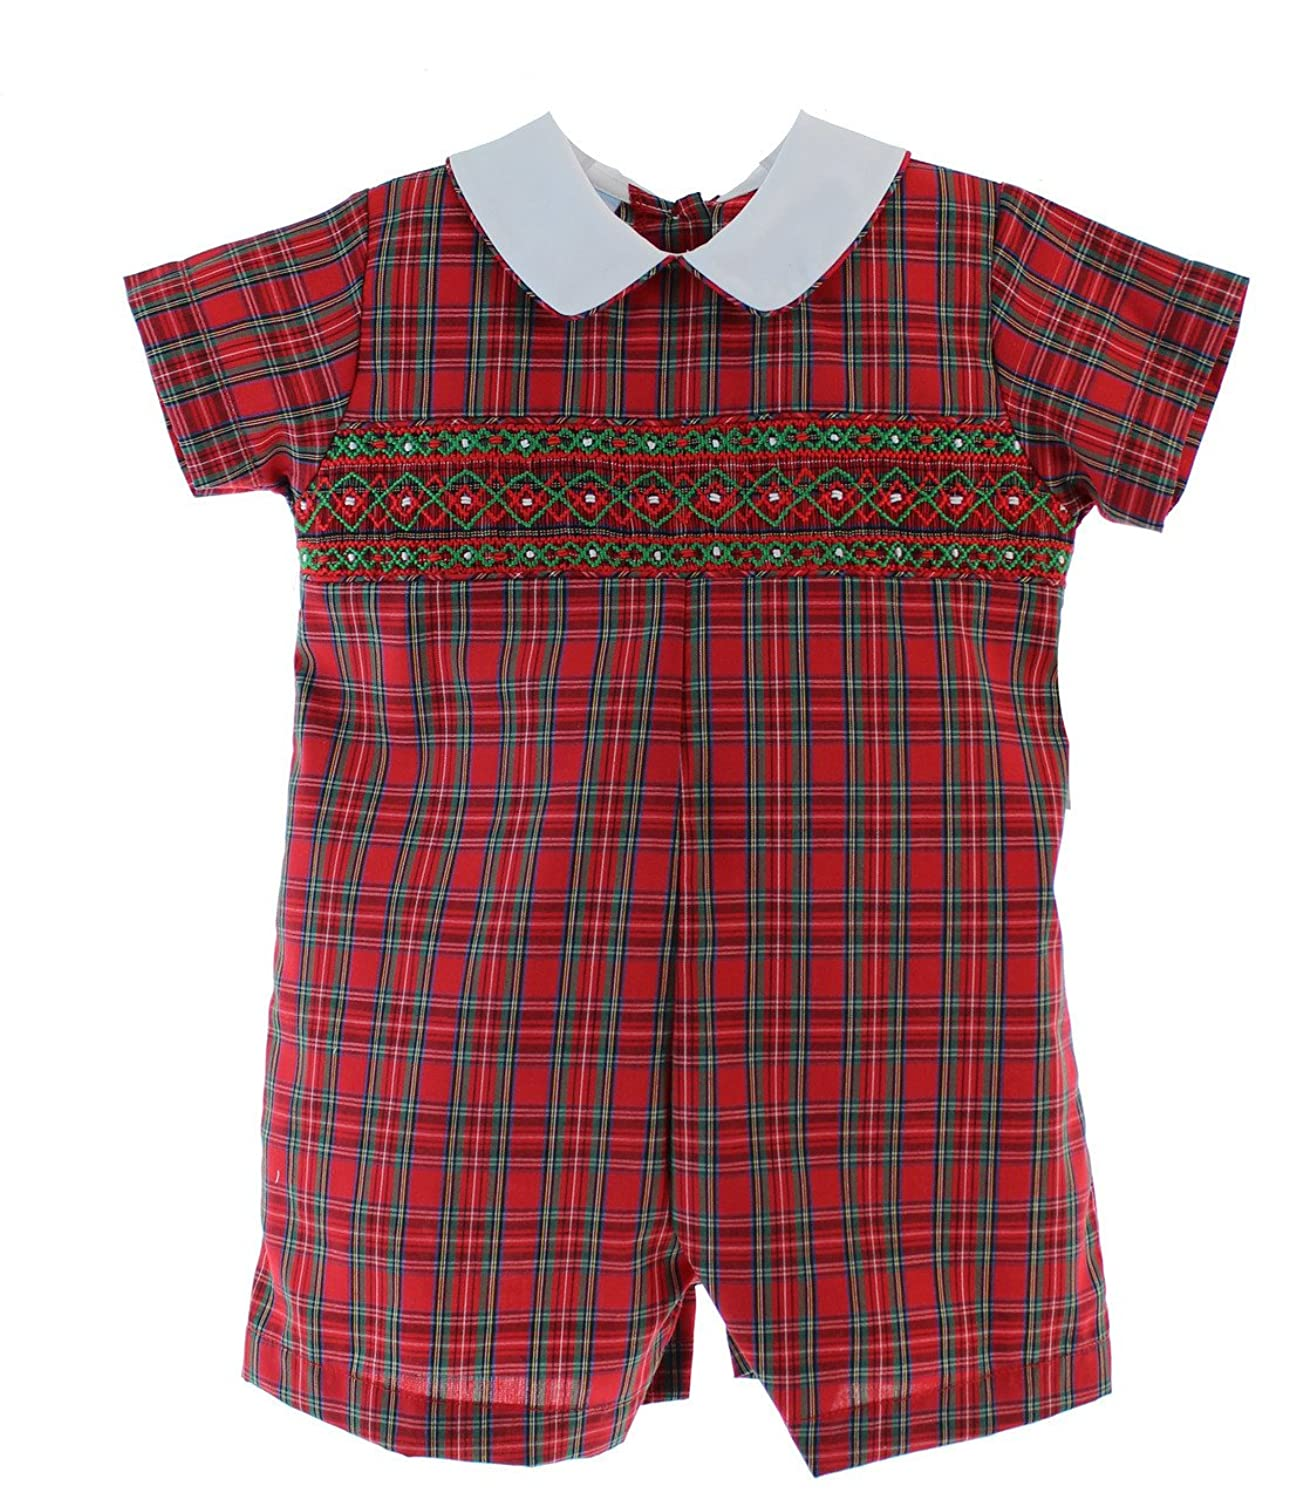 ca4fb6bbf Boys Smocked Christmas Romper Outfit Red Plaid Shortall · Baby Boy Smocked  Christmas Outfits